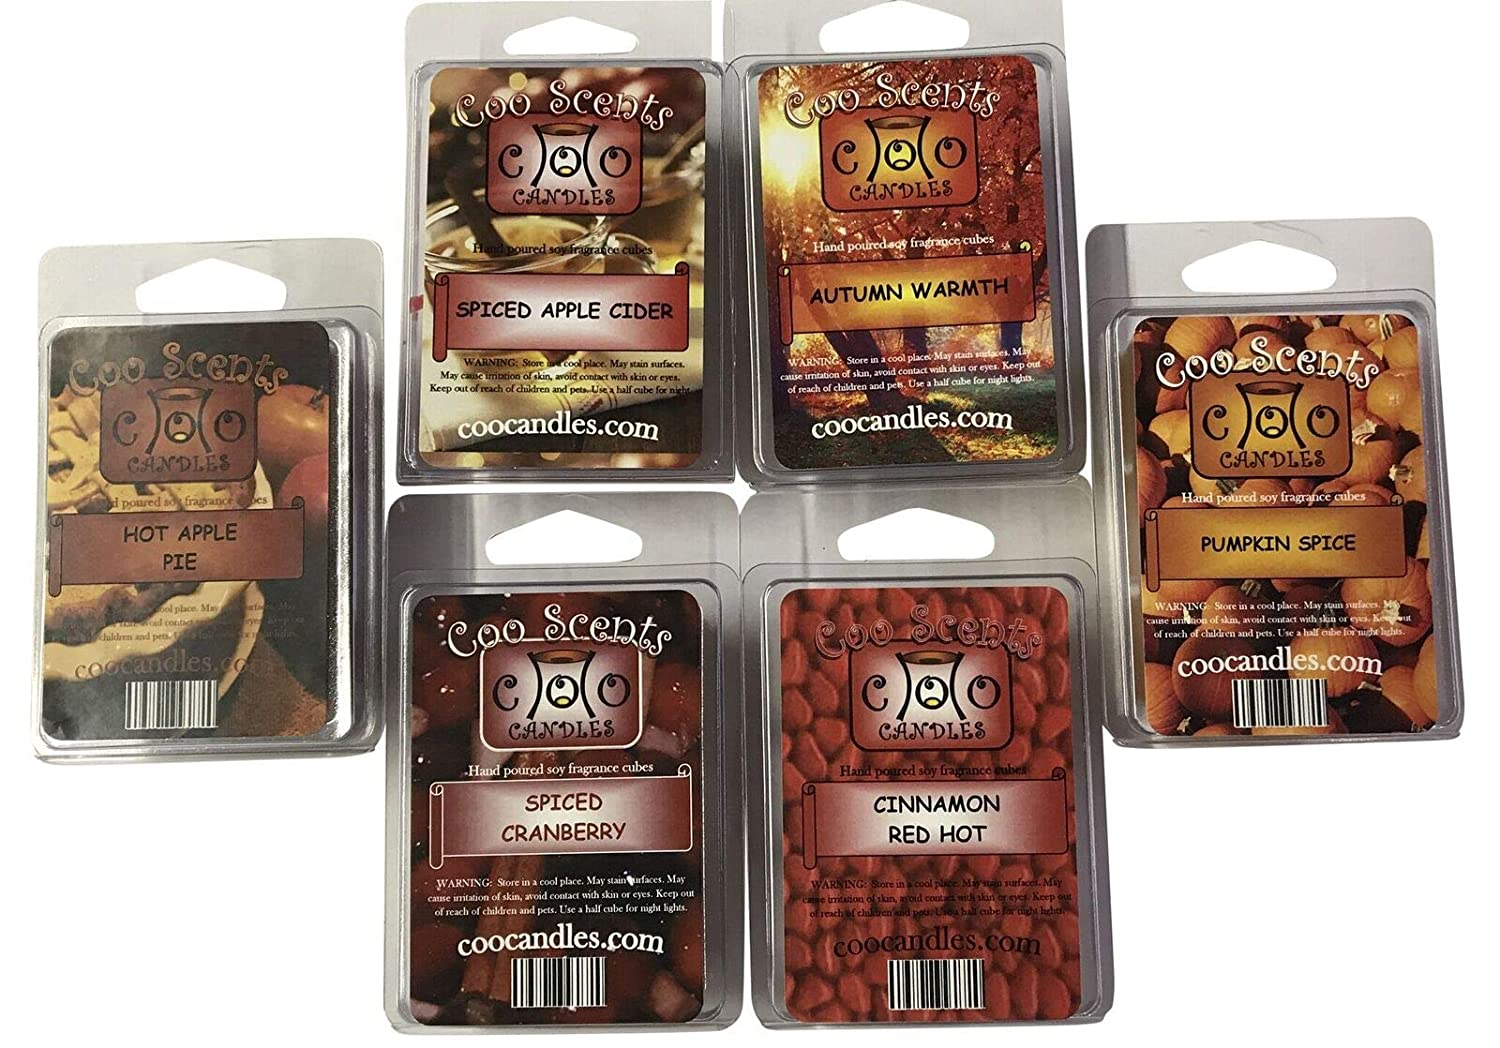 6 Pack Soy Wickless Candle Wax Bar Melts - Autumn Spice Pack - Great for Fall or Winter. Pumpkin Spice, Cinnamon Red Hot, Spiced Apple Cider, Spiced Cranberry, Hot Apple Pie, and Autumn Warmth